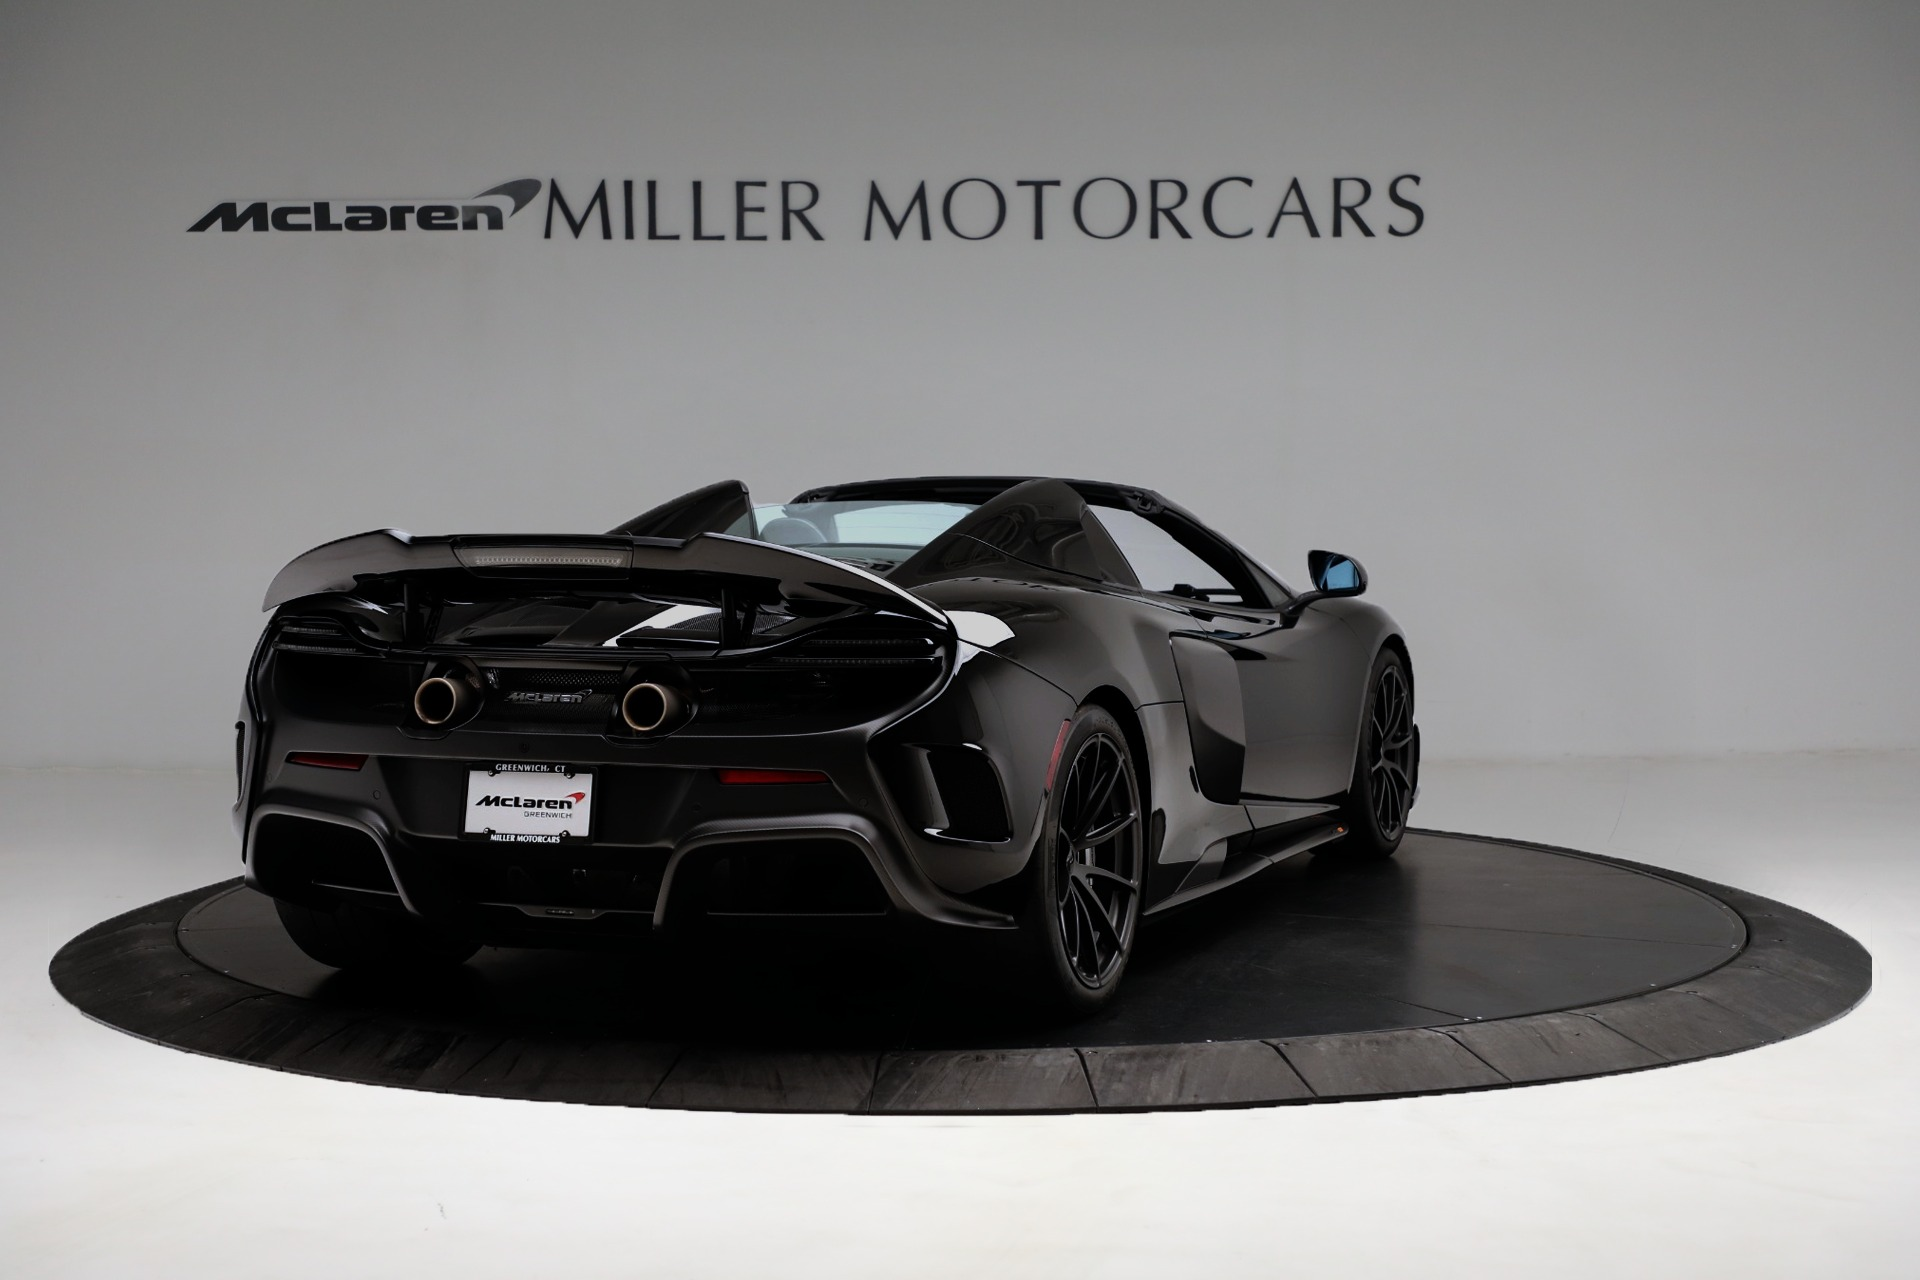 Used-2016-McLaren-675LT-Convertible